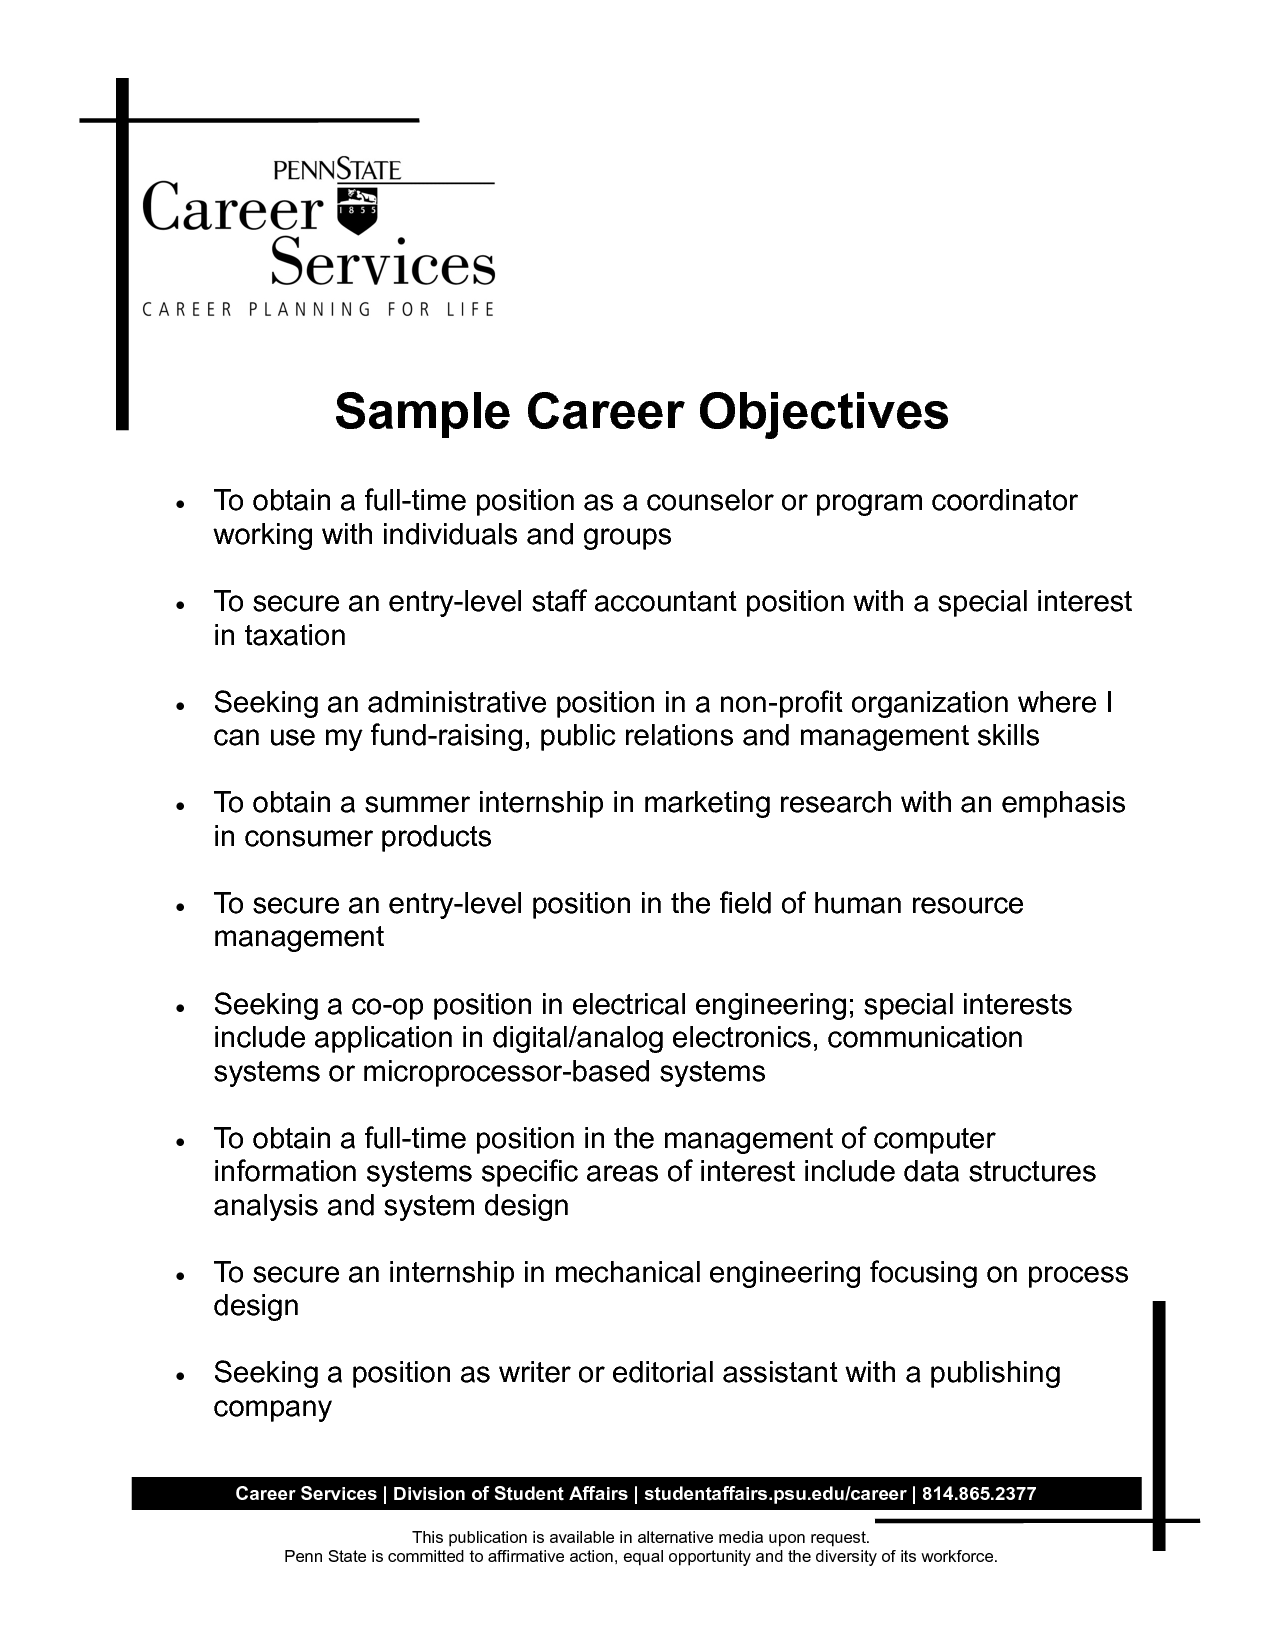 Sample Career Objective Statements some potition ofGallery of Resume Career Objective Examples